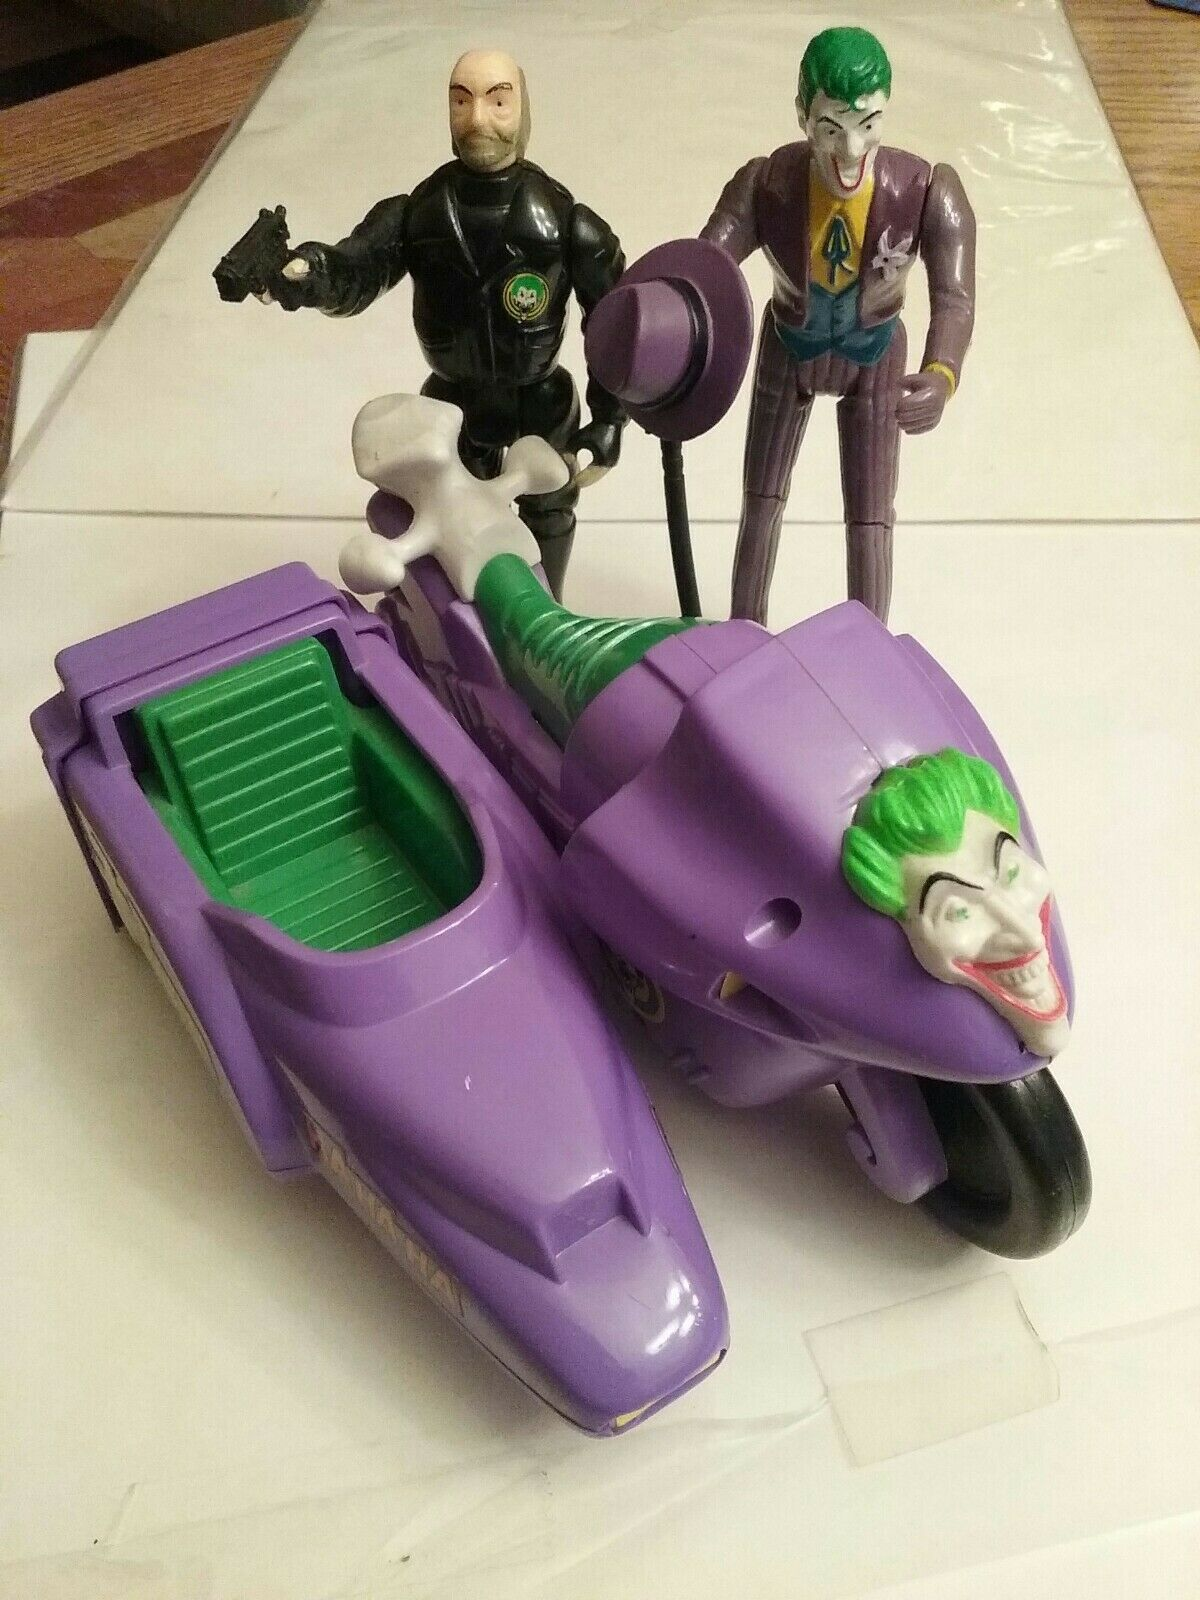 1989 BATMAN TOYS JOKER MOBILE BOB PREOWNED LOT (3)